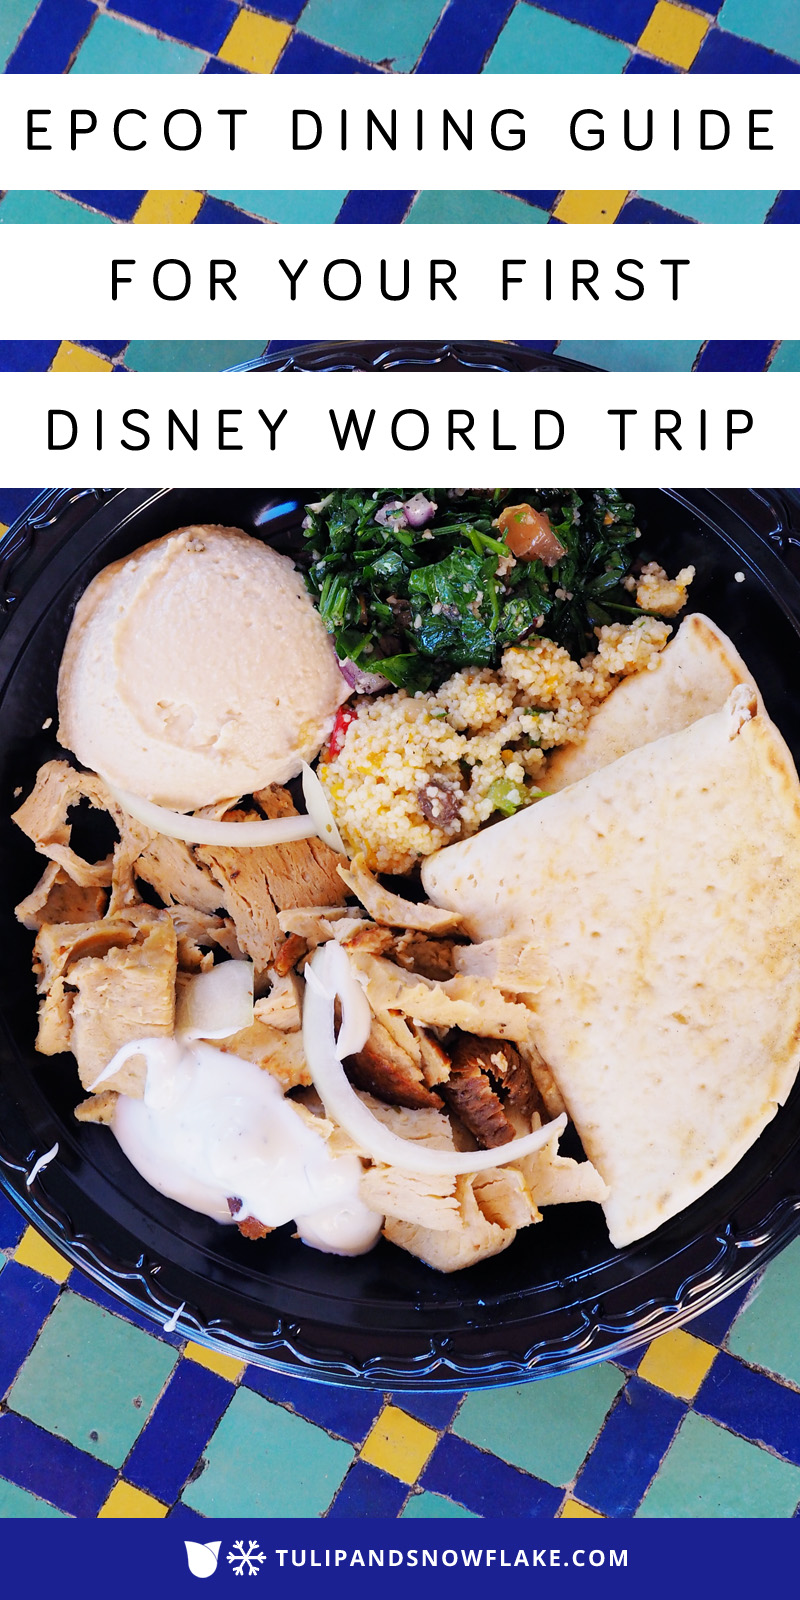 Epcot Dining Guide for Your First Disney World Trip